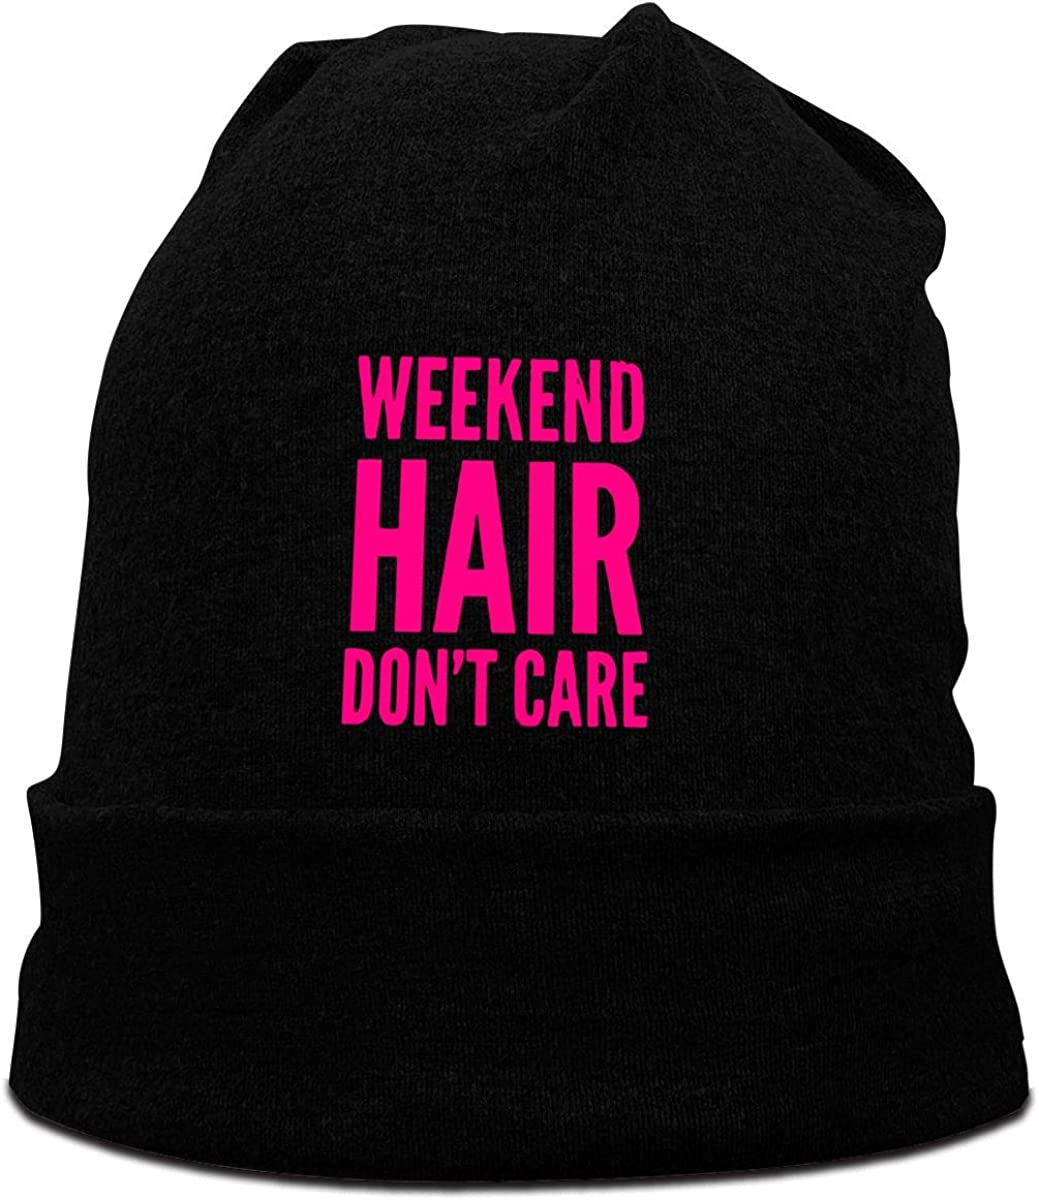 FOECBIR Weekend Hair Dont Care Beanie Hats Sailor Hat Women Slouchy Hat Black